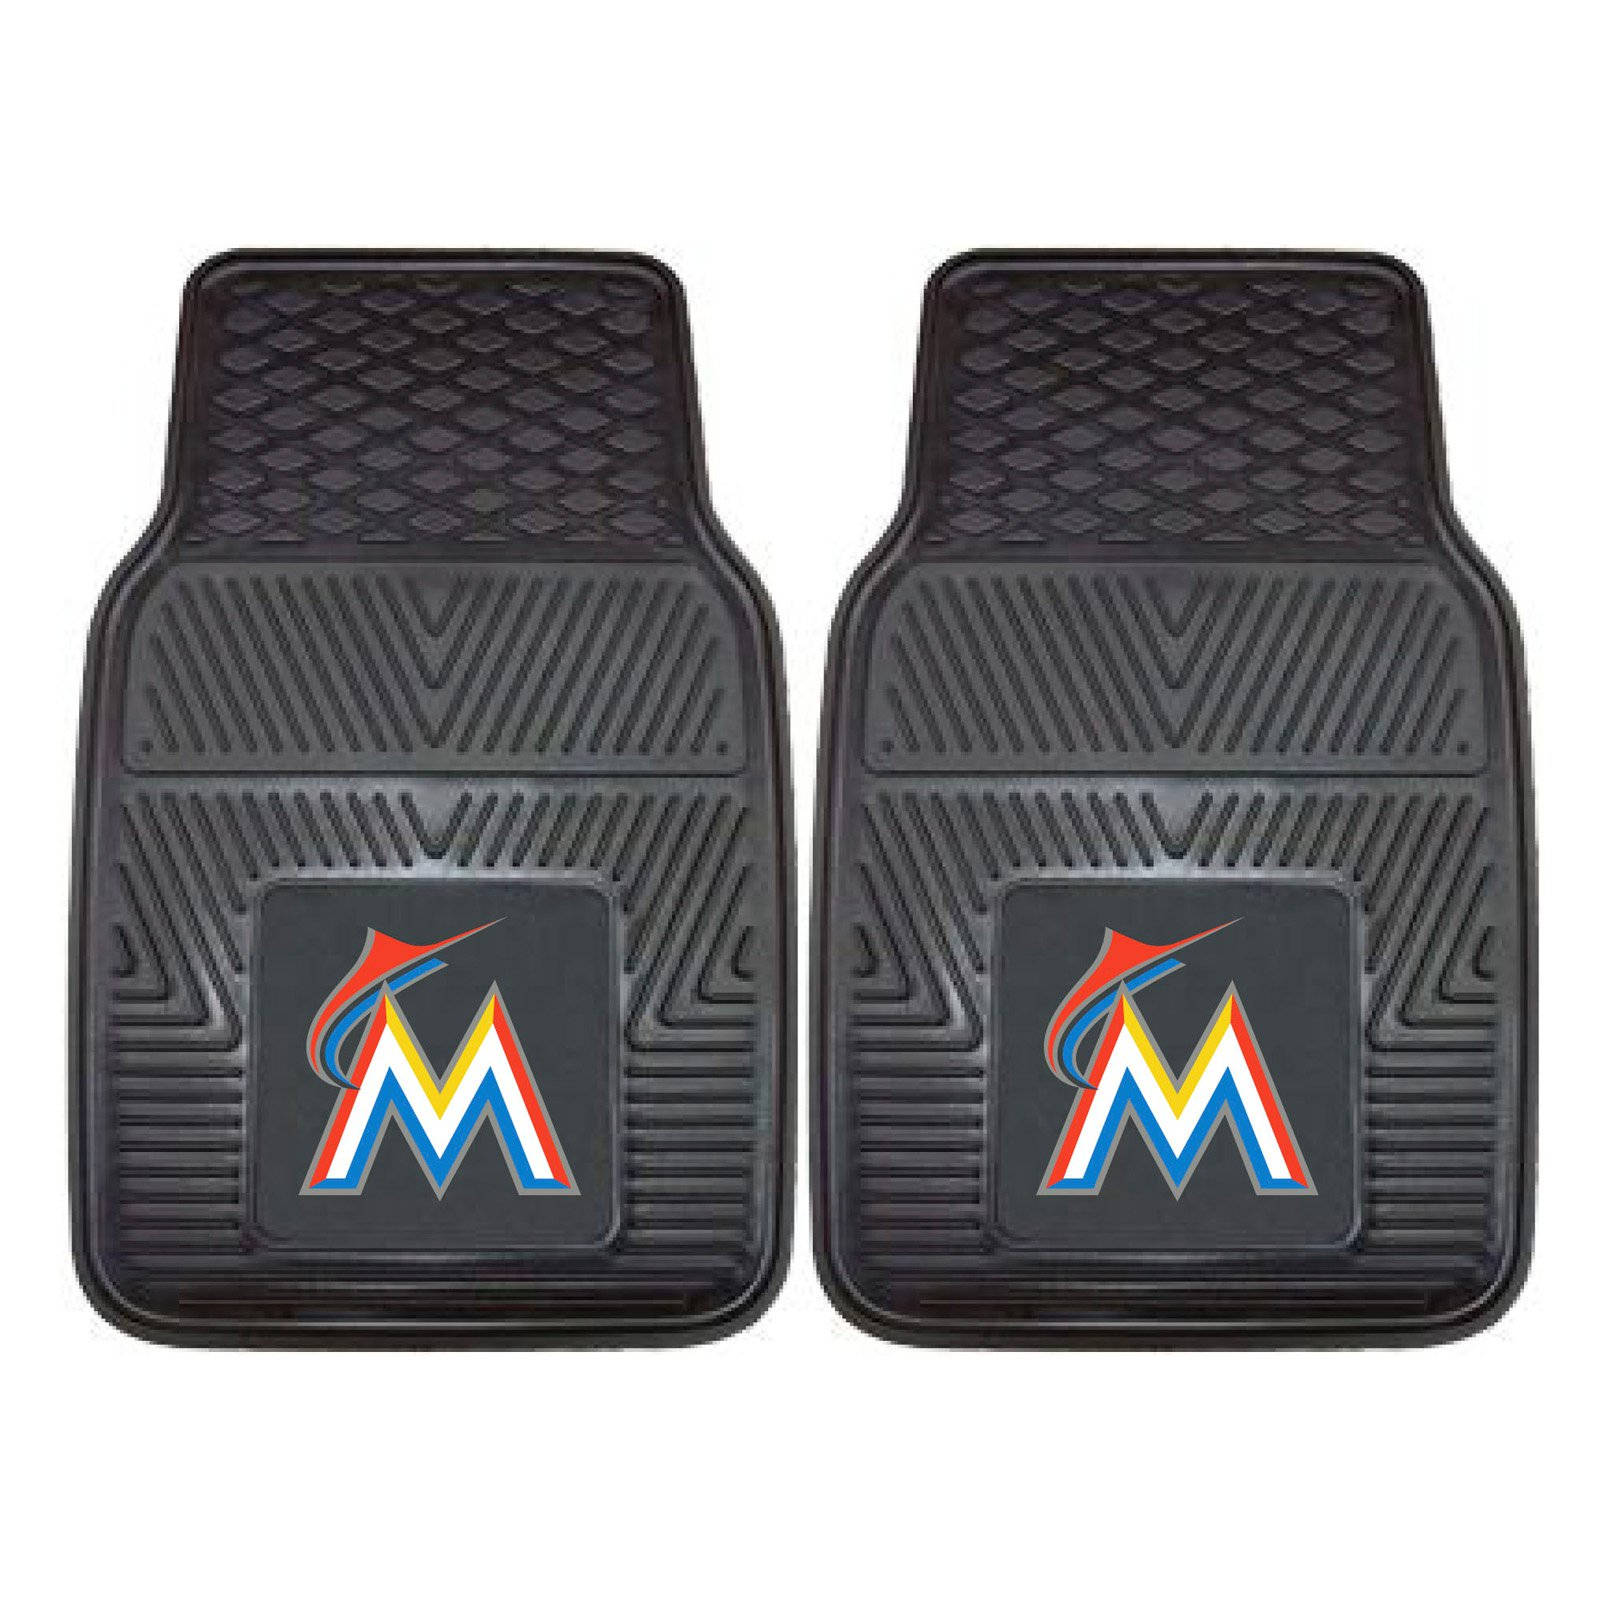 Fan Mats MLB Baseball Vinyl Car Mats - Set of 2